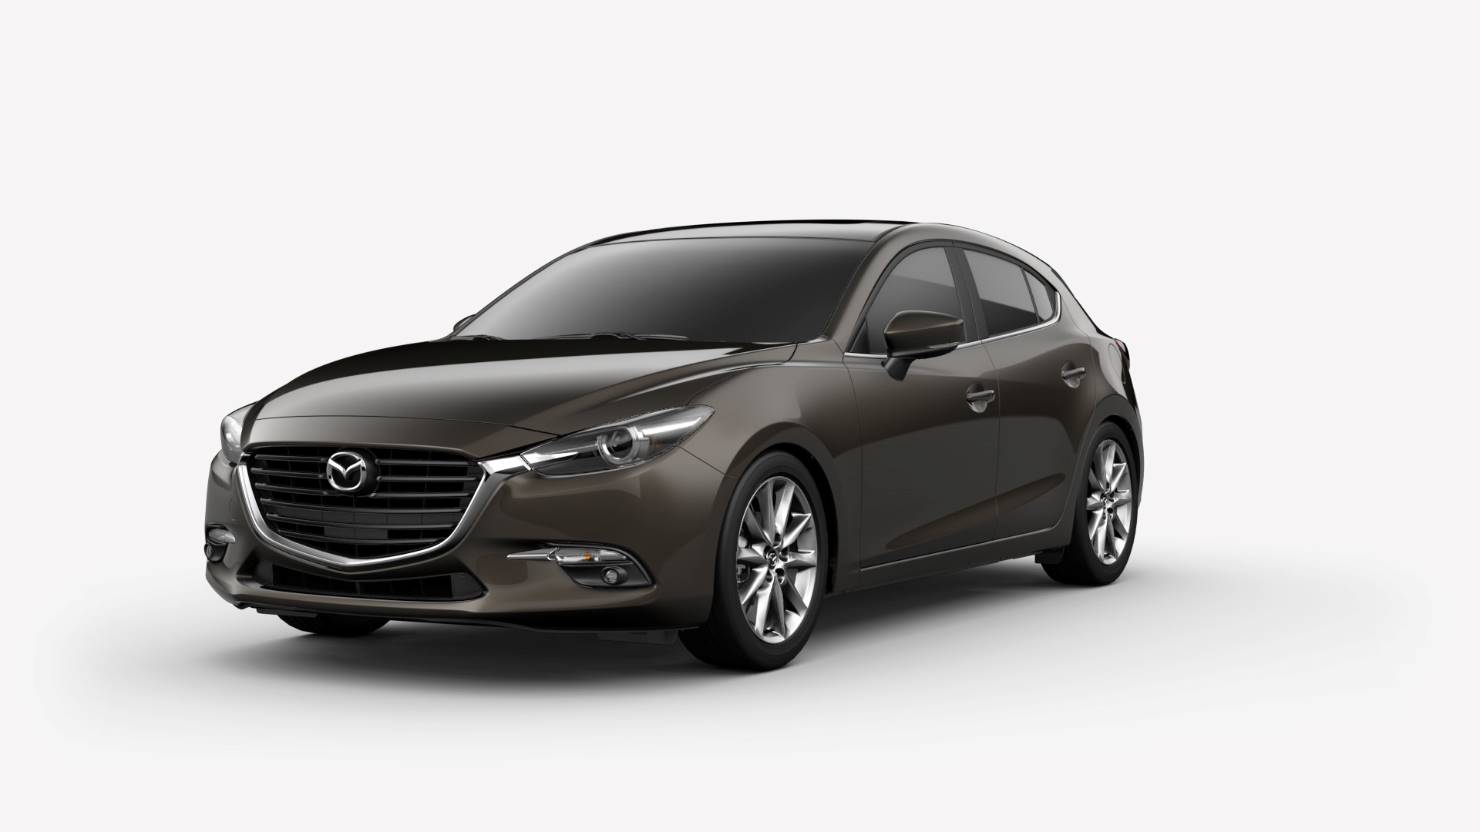 2018 Mazda3 Hatchback, Titanium Flash